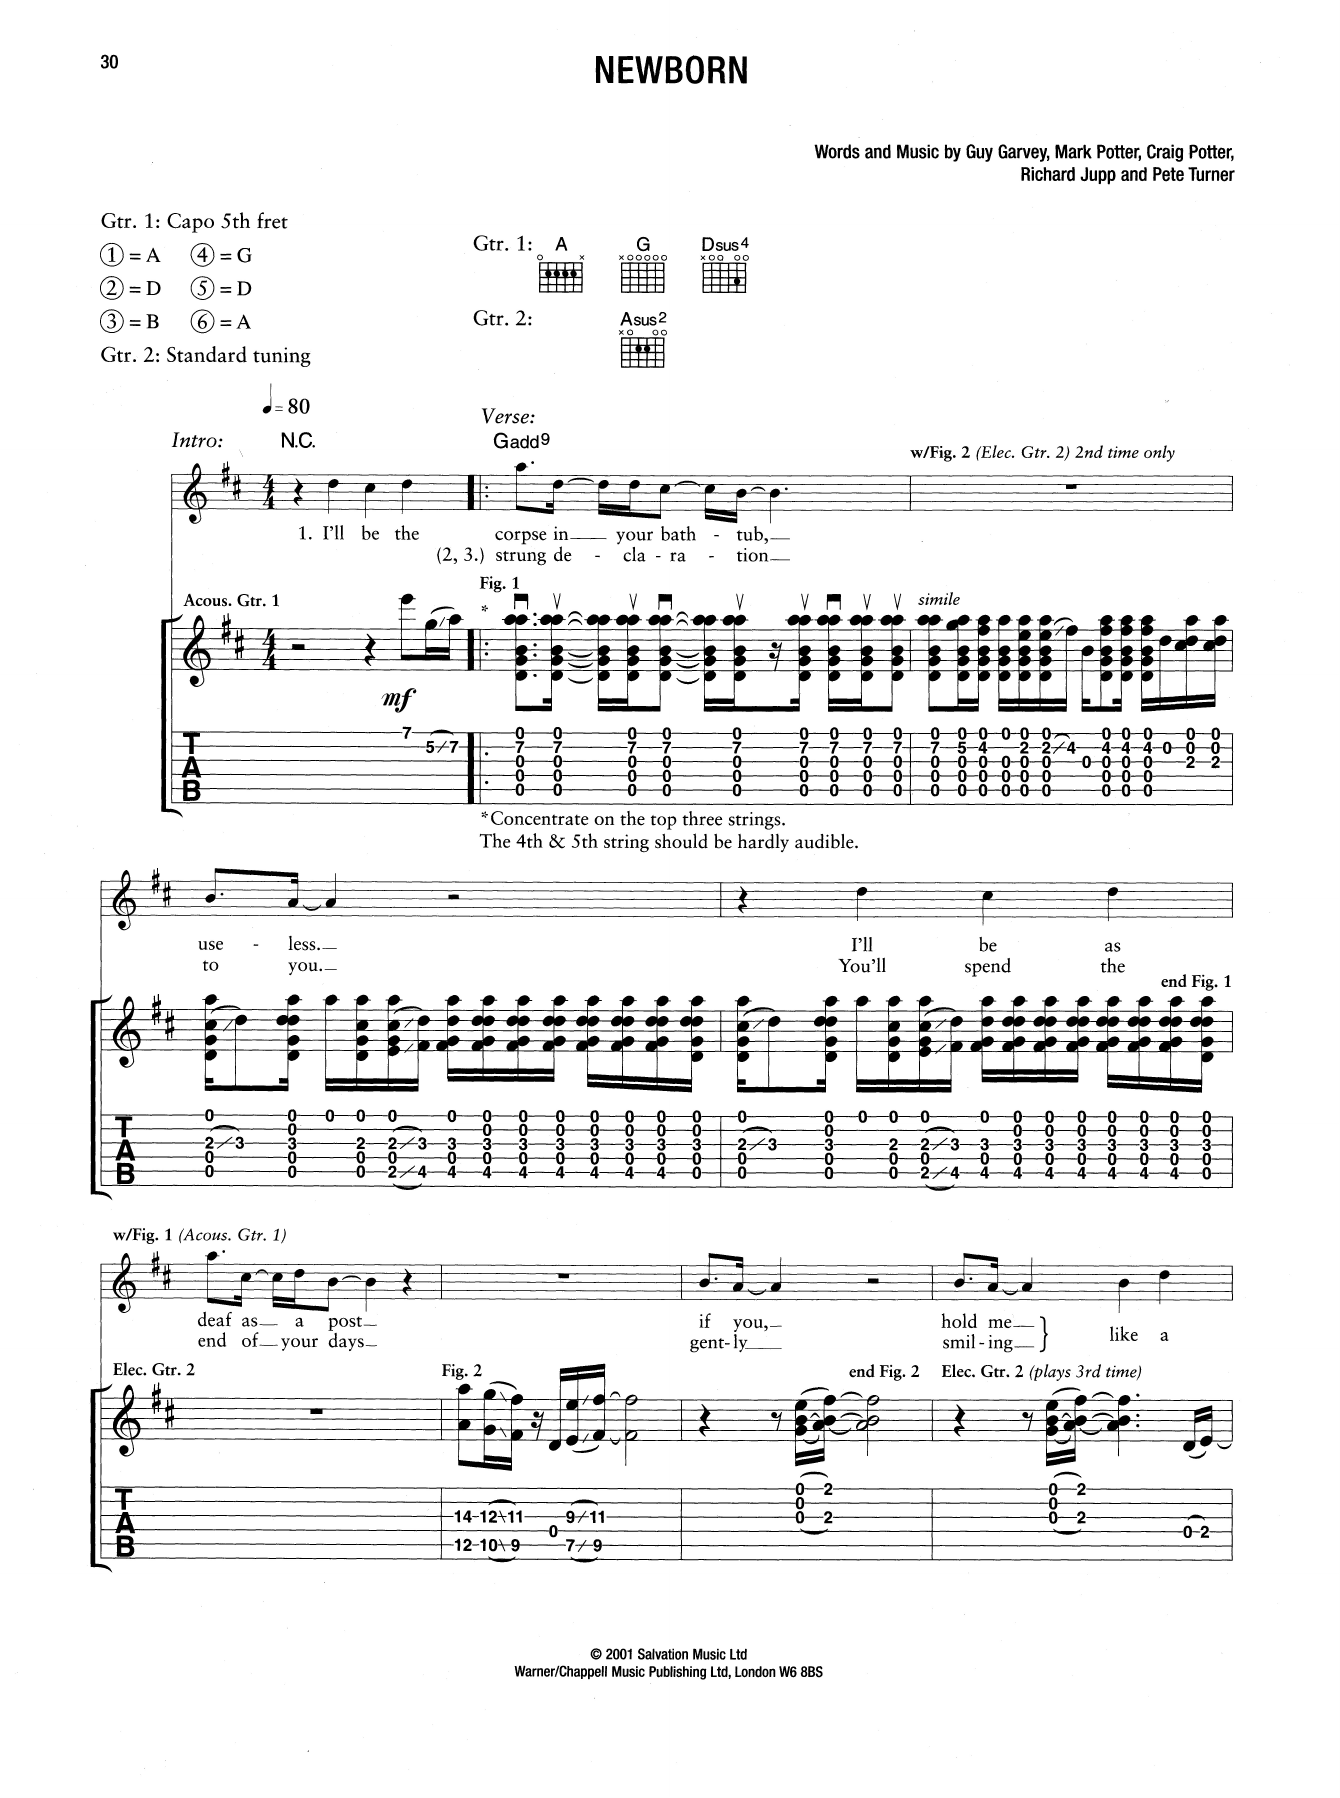 Newborn By Elbow Guitar Tab Digital Sheet Music